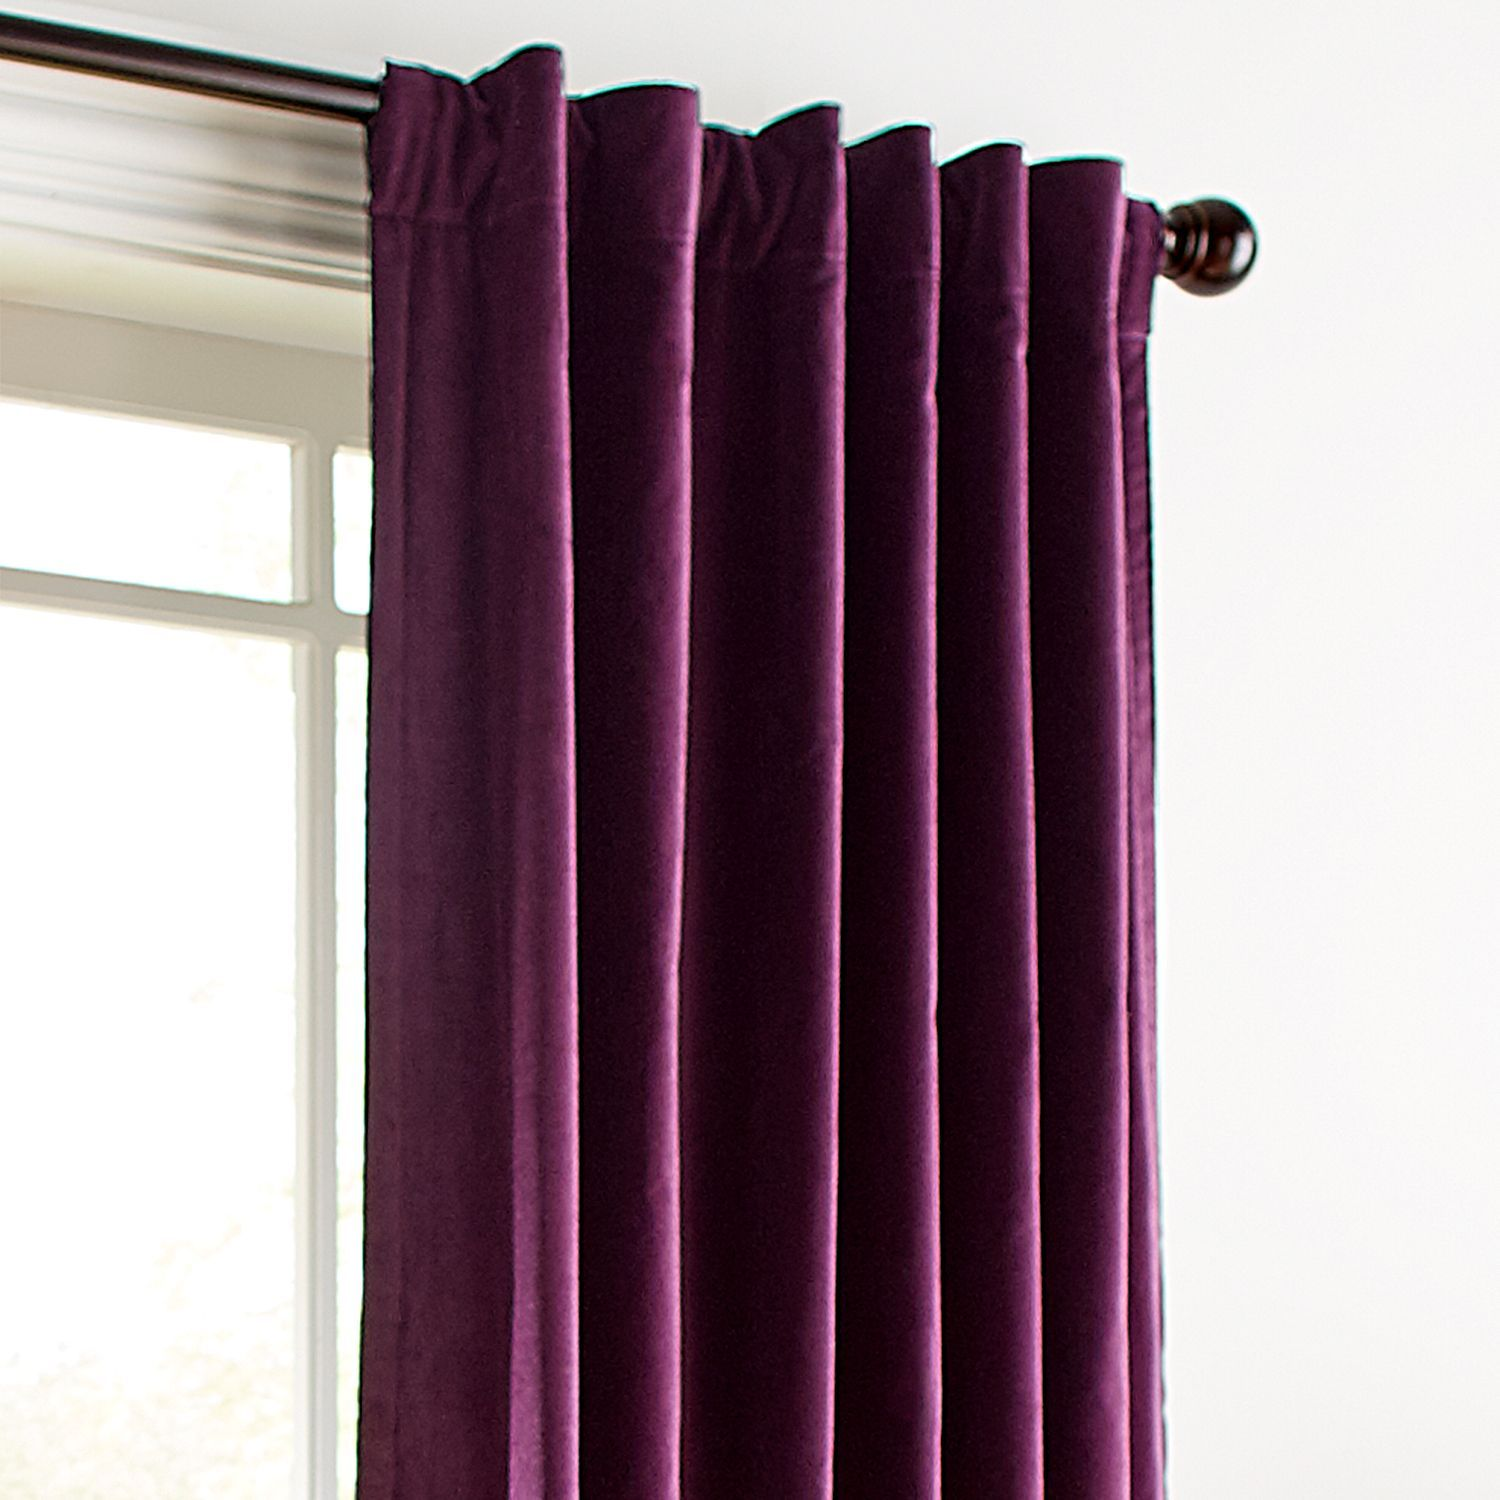 Sheridan Velvet Plum 84 Curtain Pier 1 Imports Purple Curtains Living Room Plum Curtains Living Room Decor Curtains #plum #living #room #curtains